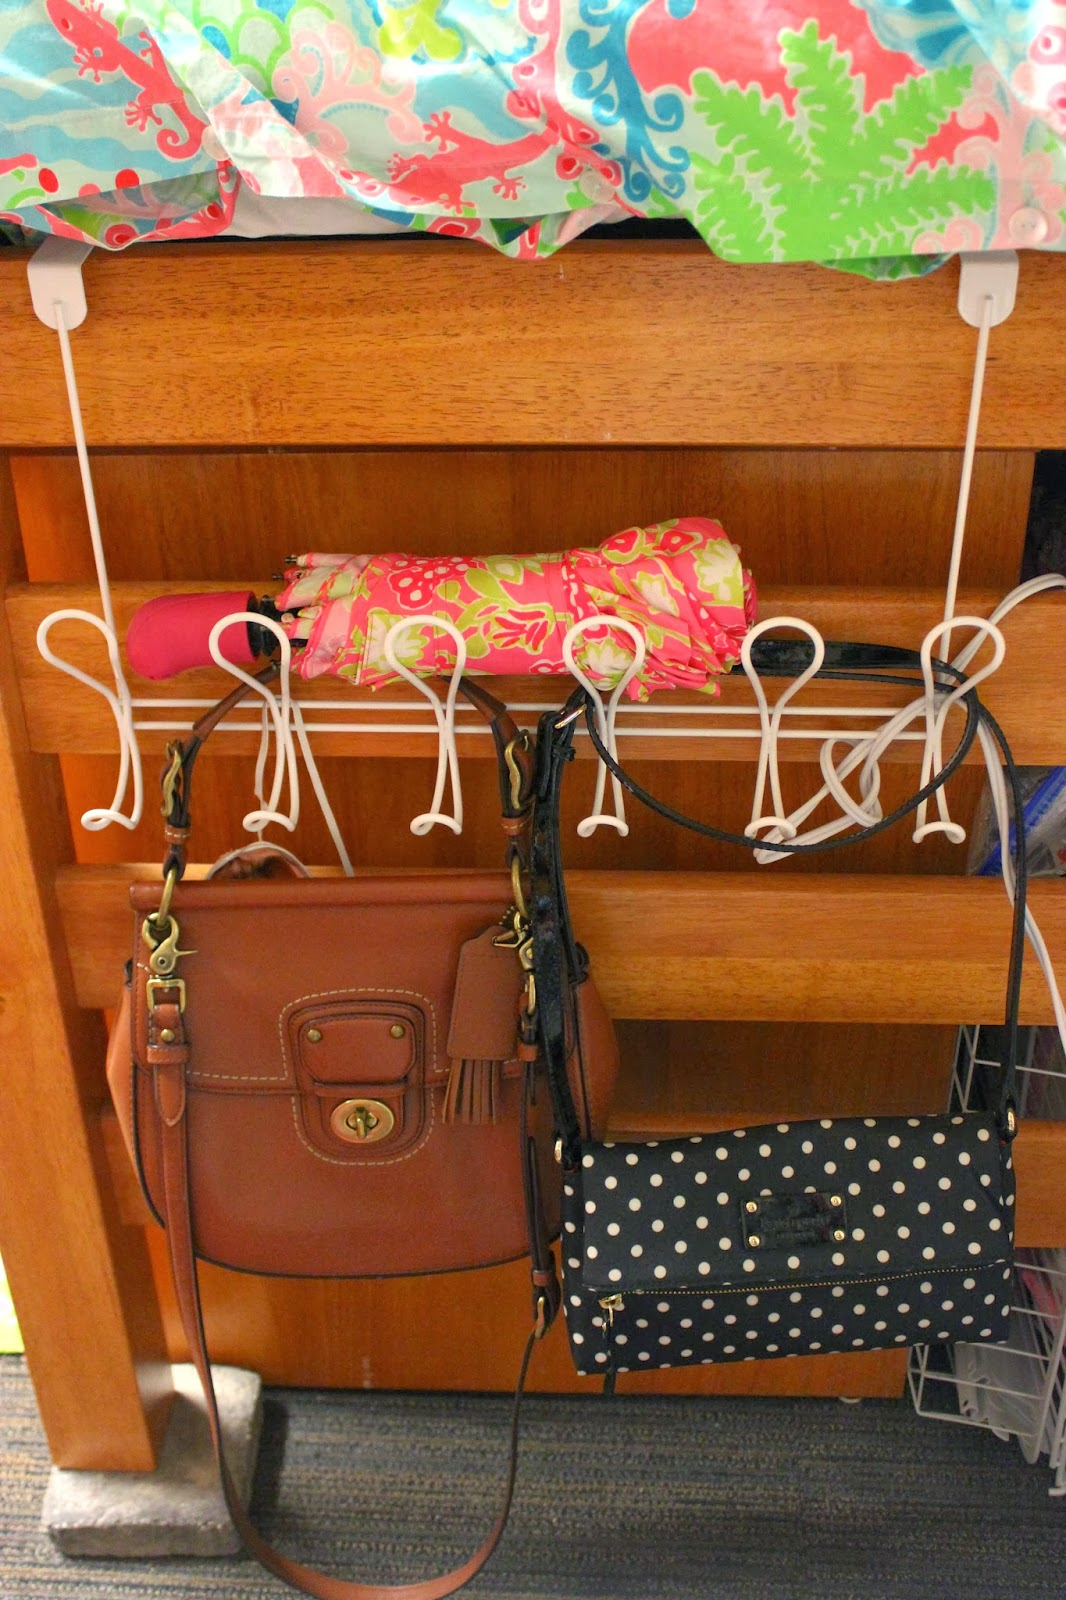 Dorm Room: Dorm Room Essentials!